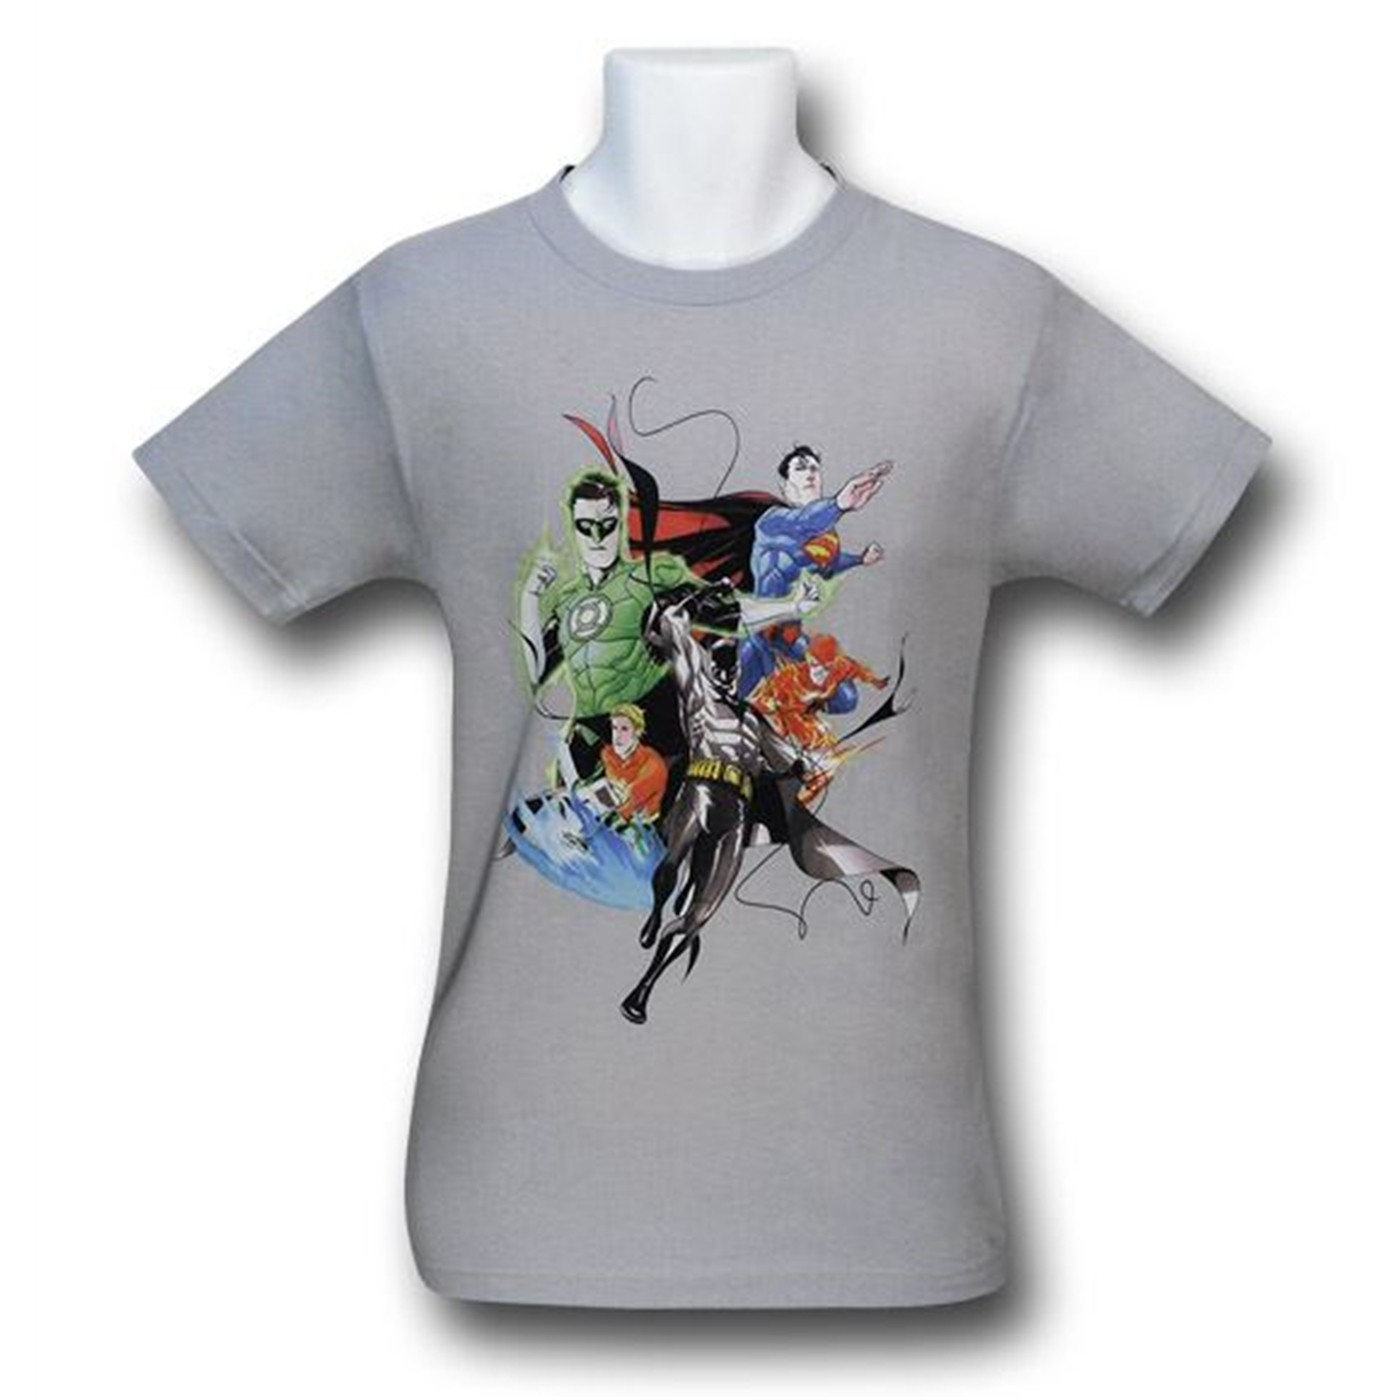 Justice League Mashup by Dustin Nguyen T-Shirt